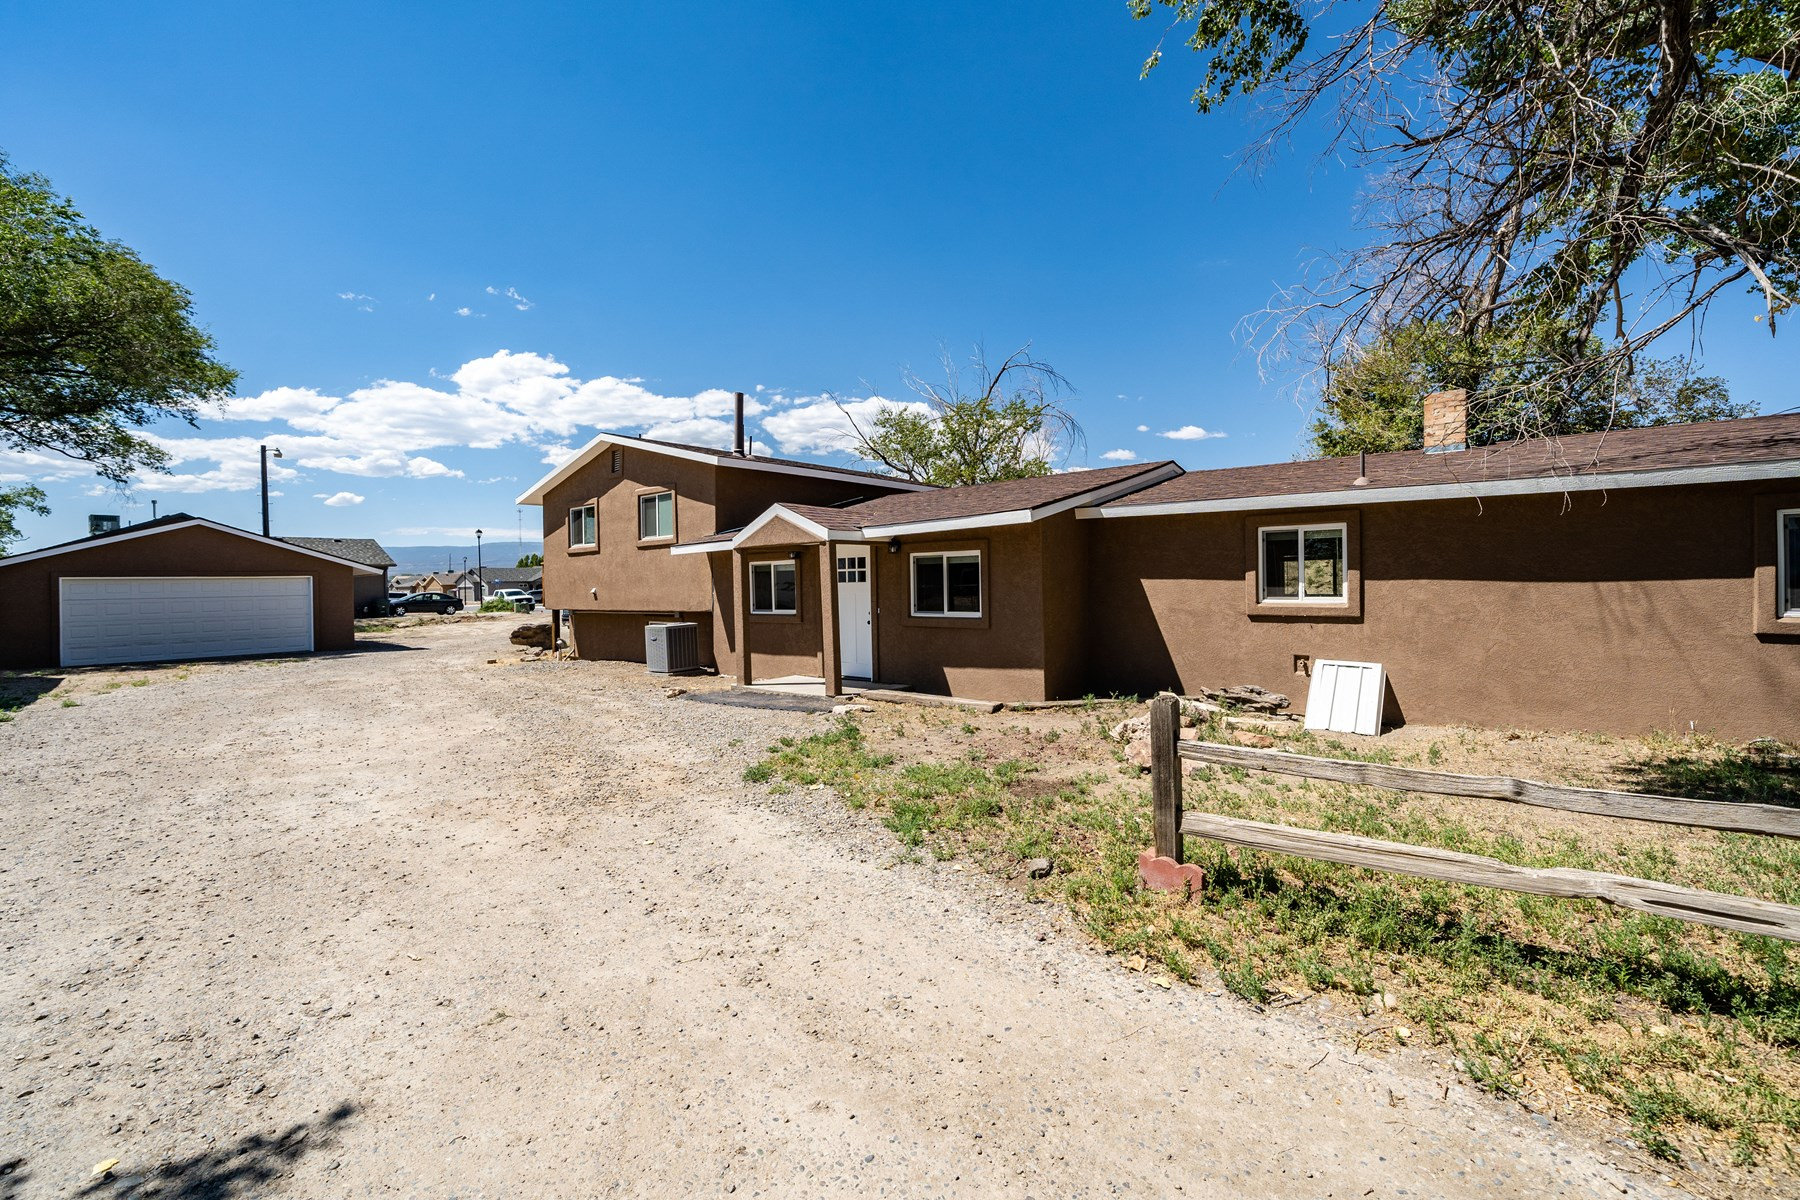 Remodeled Home on Large Lot For Sale in Grand Junction, CO